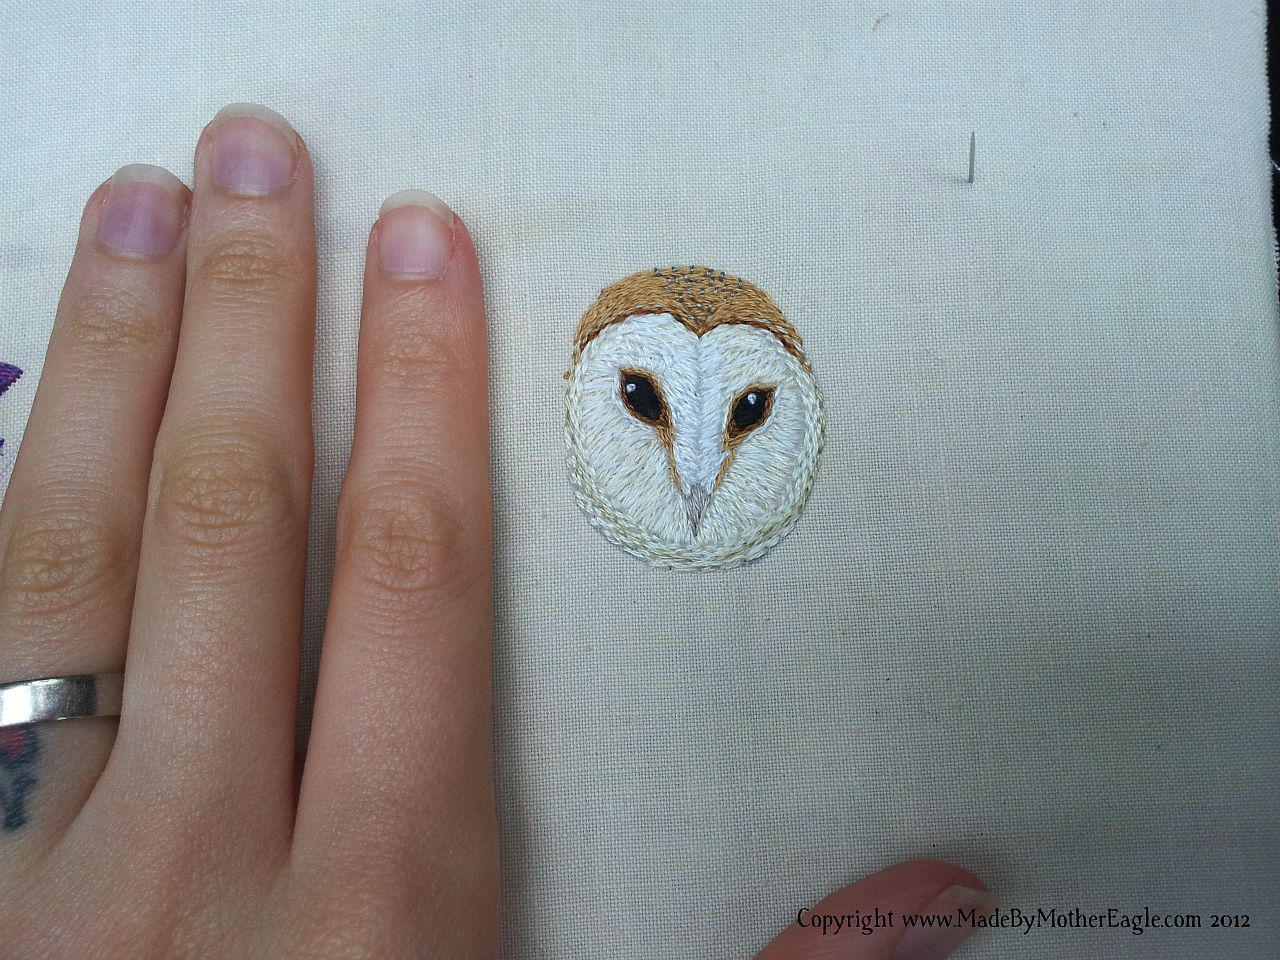 Iamge showing scale of Barn Owl Embroidery  in relation to human hand